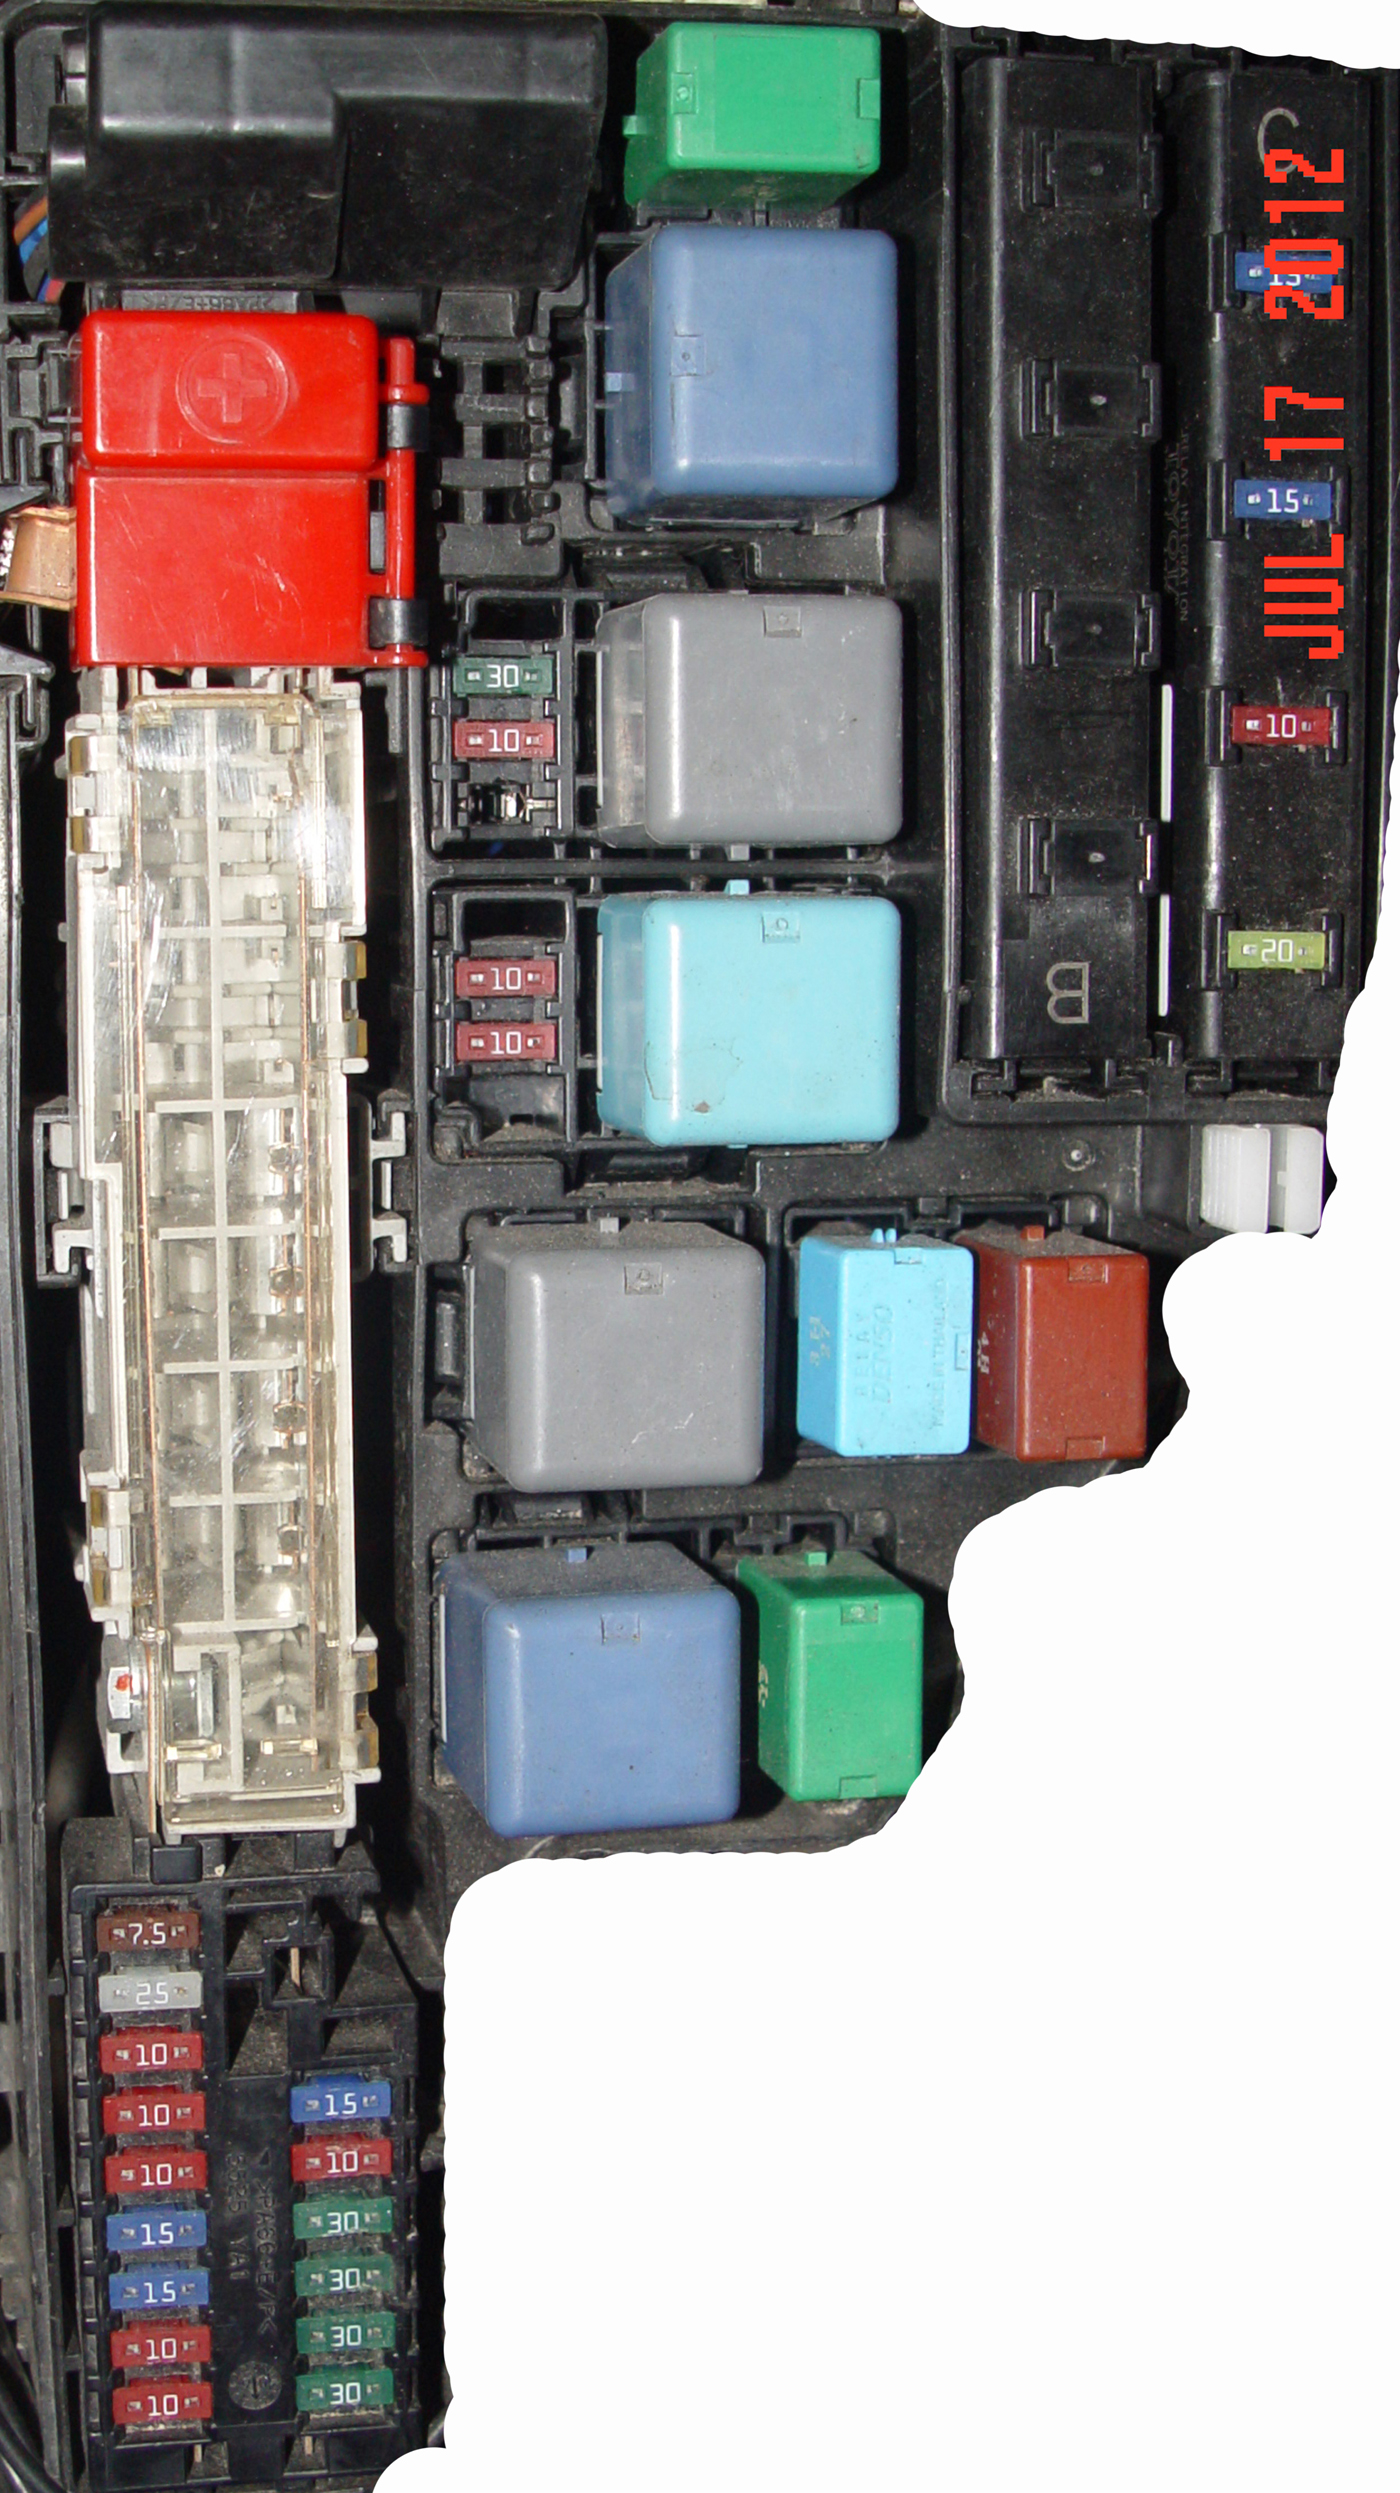 2004 toyota prius fuse box diagram iirGtIL toyota prius fuse box toyota matrix fuse box \u2022 free wiring  at readyjetset.co